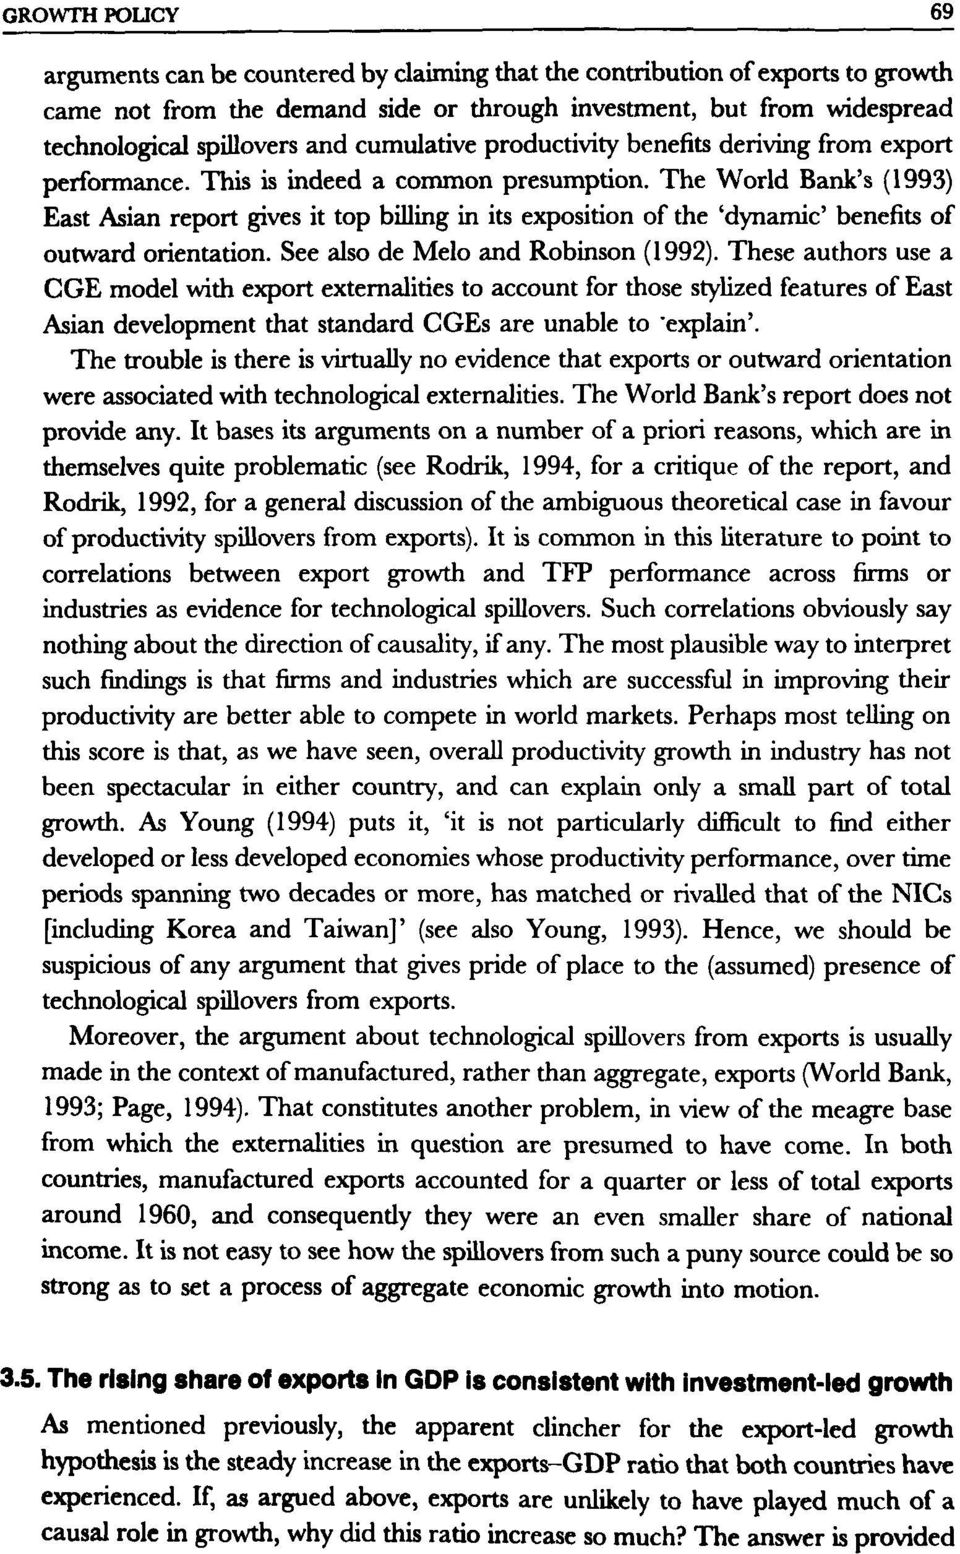 The World Bank's (1993) East Asian report gives it top billing in its exposition of the 'dynamic' benefits of outward orientation. See also de Melo and Robinson (1992).